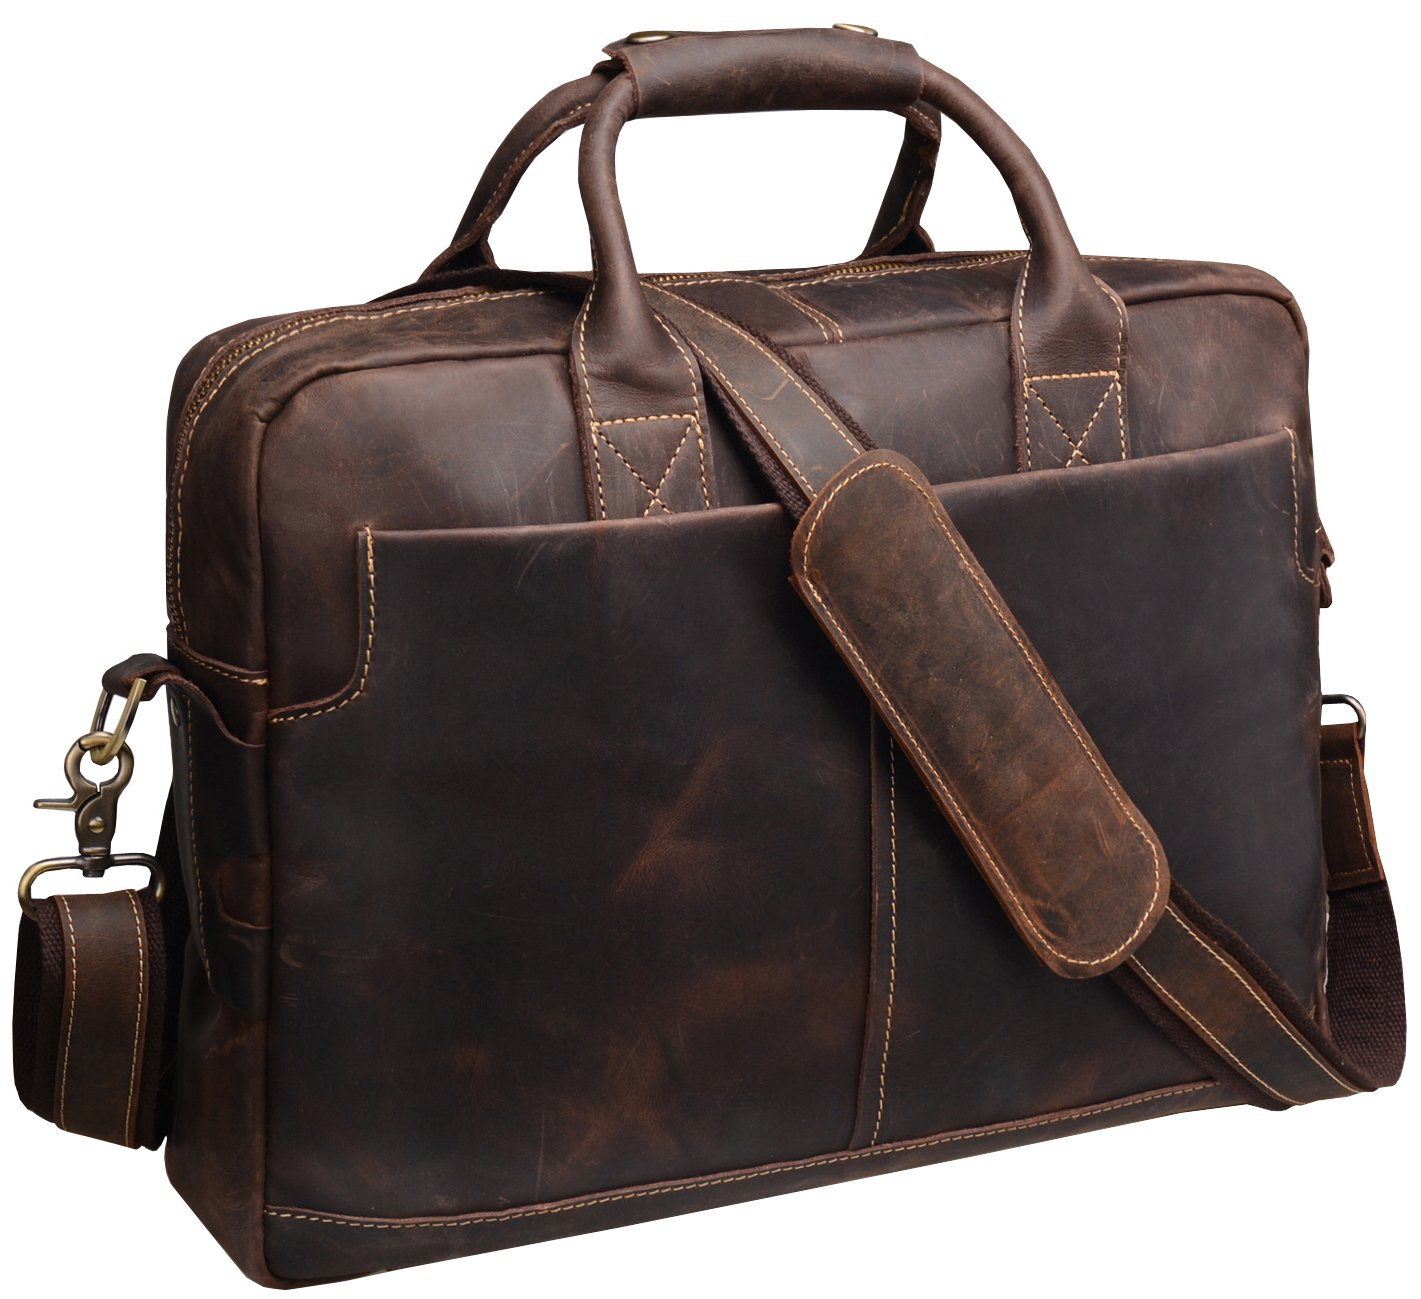 "Iswee Men's Leather Briefcase 16'' Laptop Messenger Bag 17""Laptop Attache Case Tote Shoulder Bag (Large Dark Brown)"